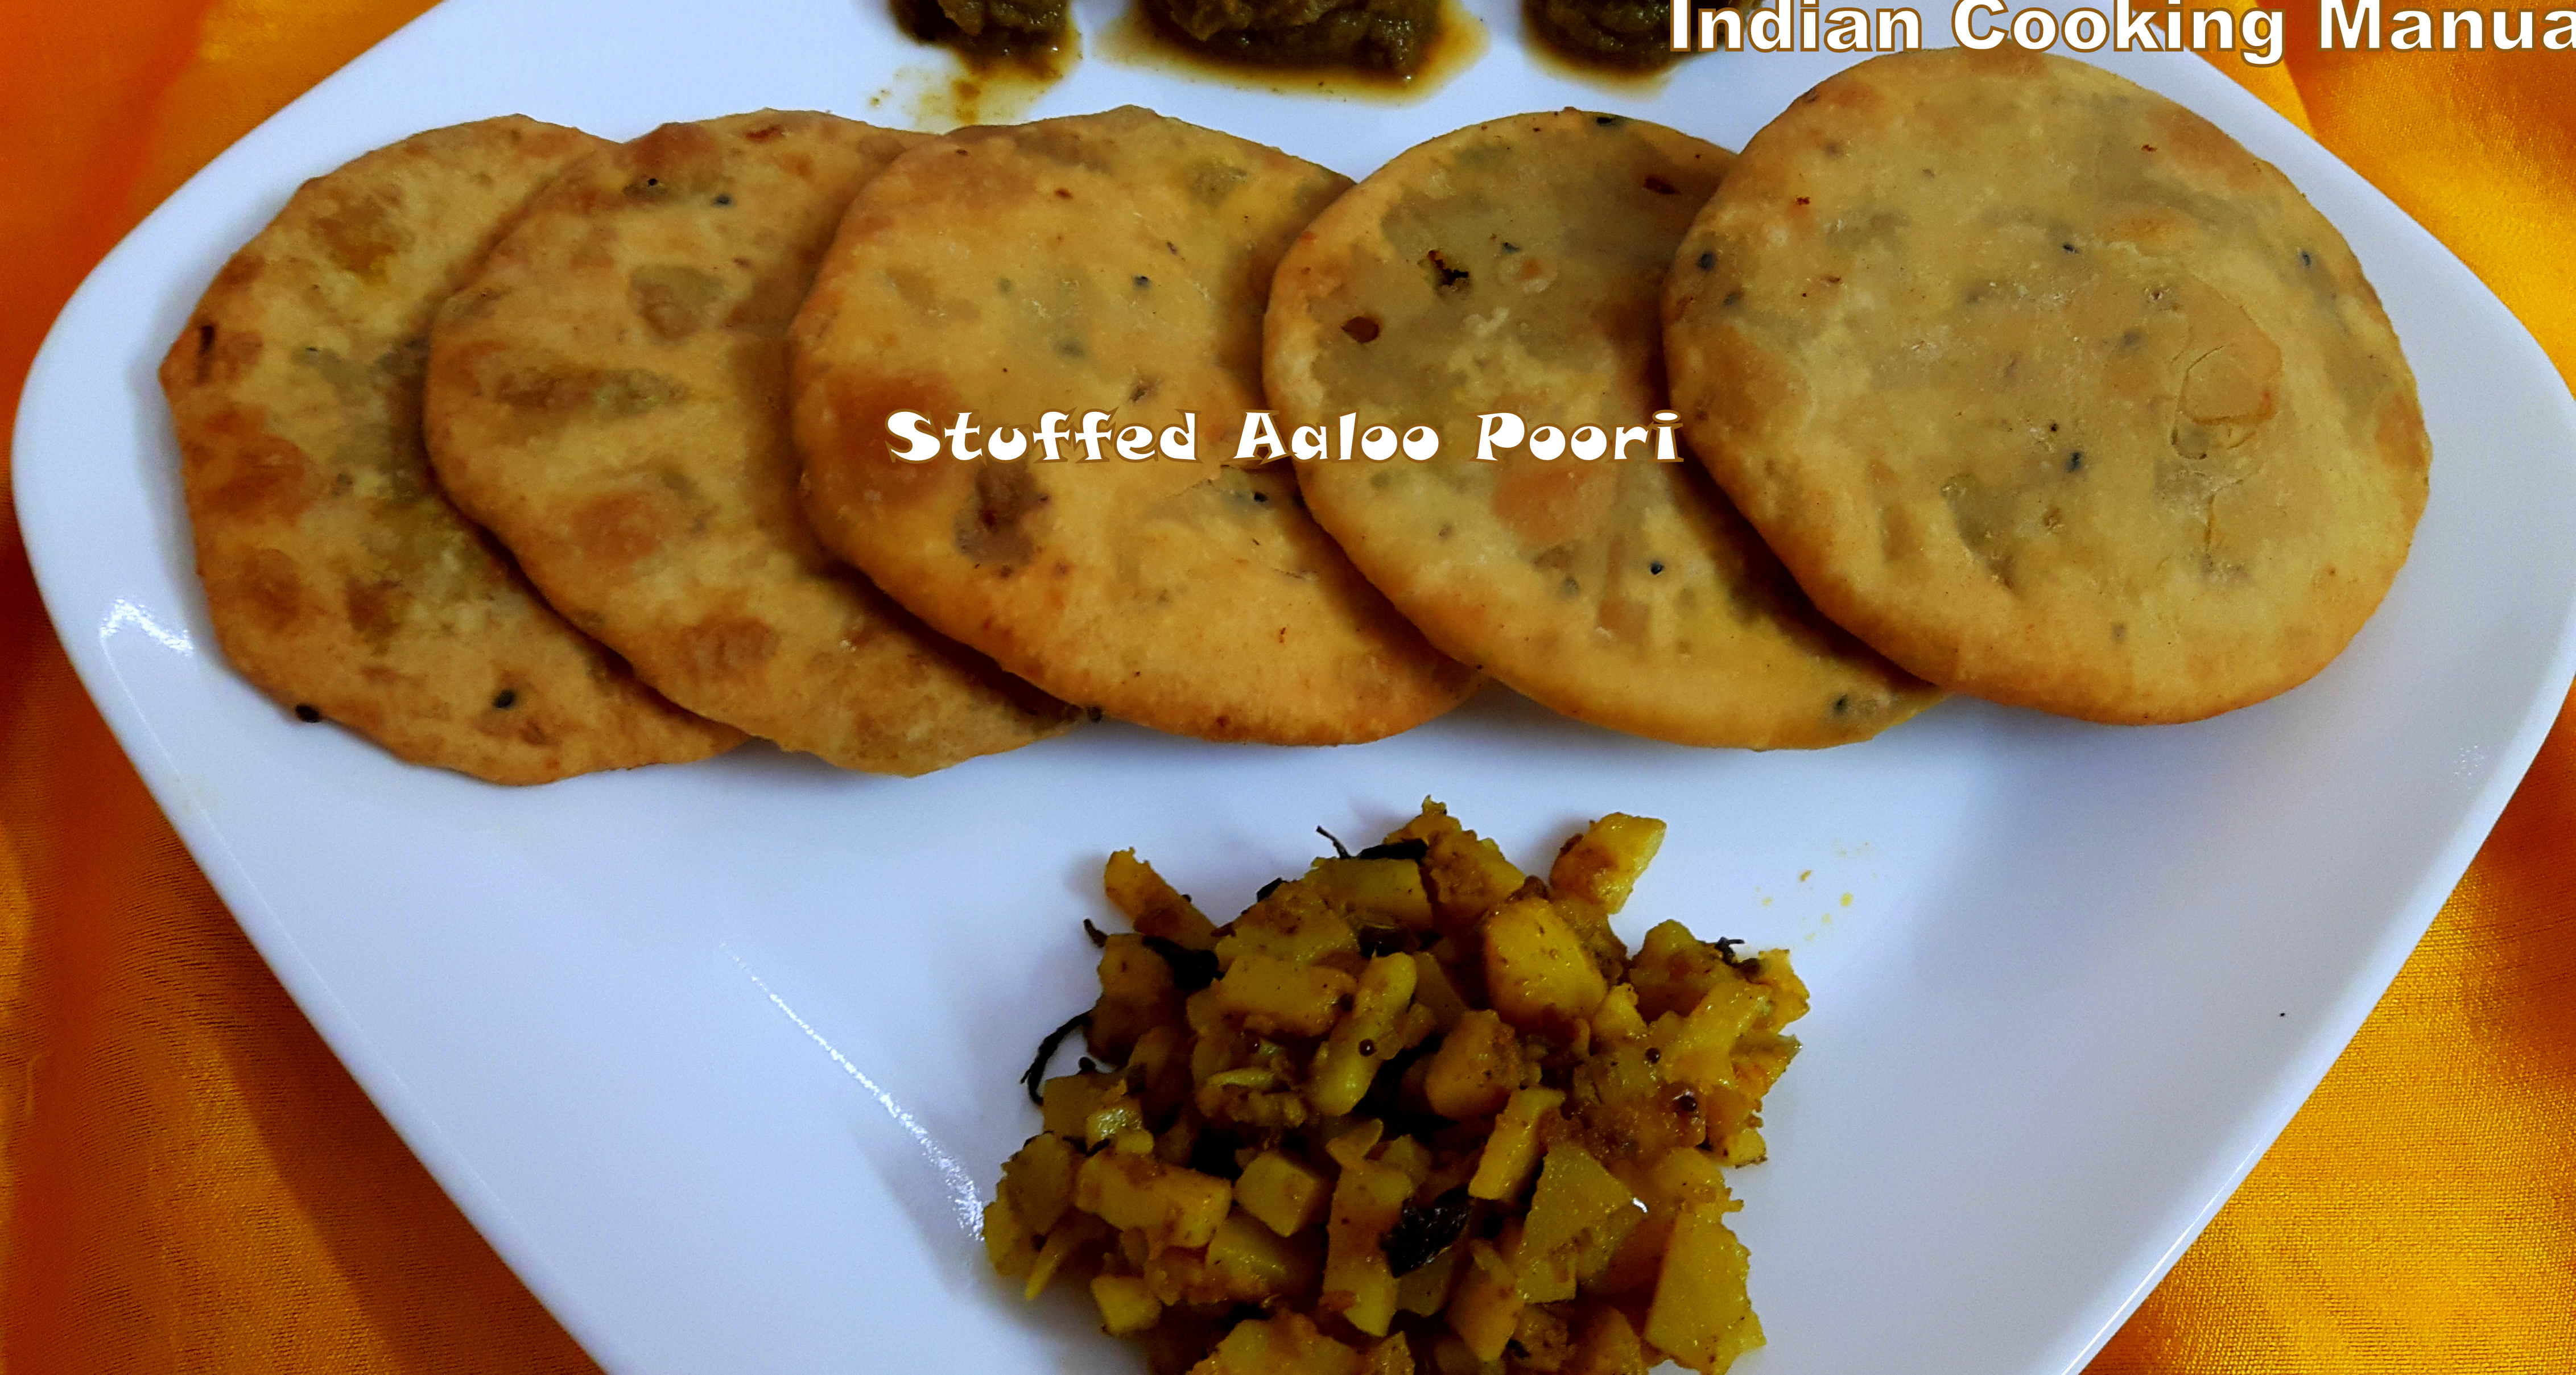 Stuffed Aaloo Poori